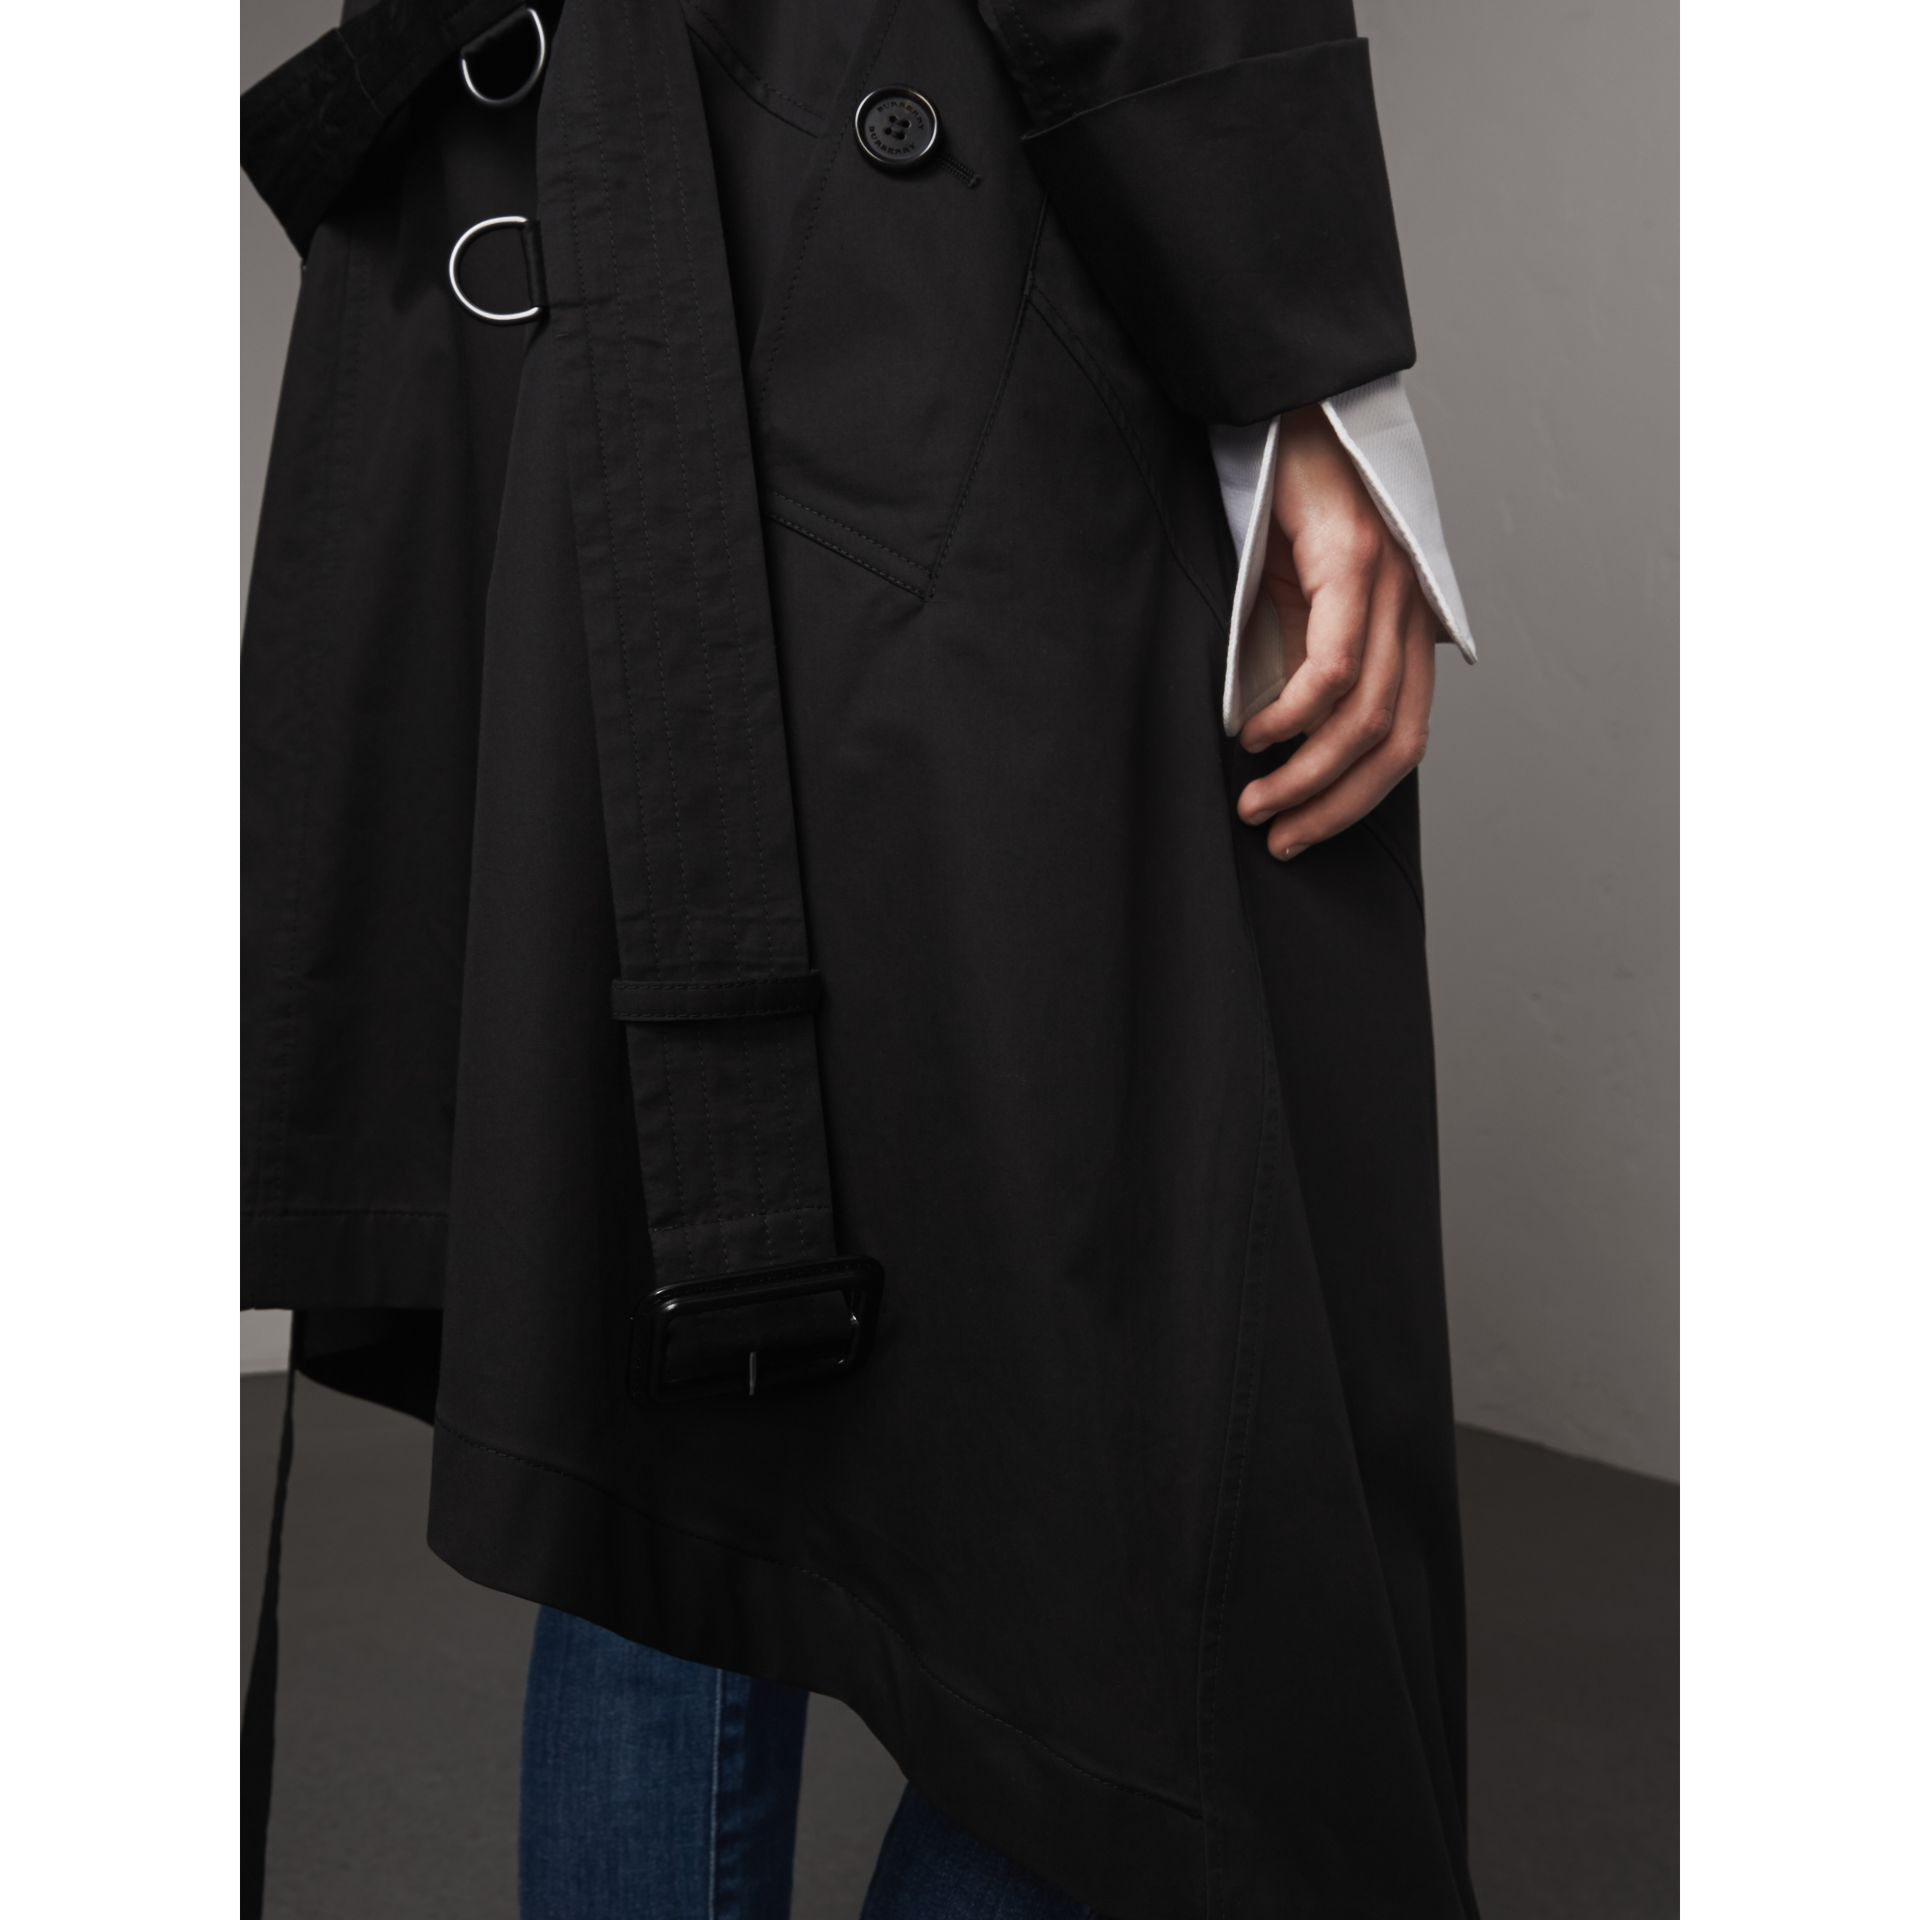 Cotton Asymmetric Trench Coat in Black - Women | Burberry - gallery image 2